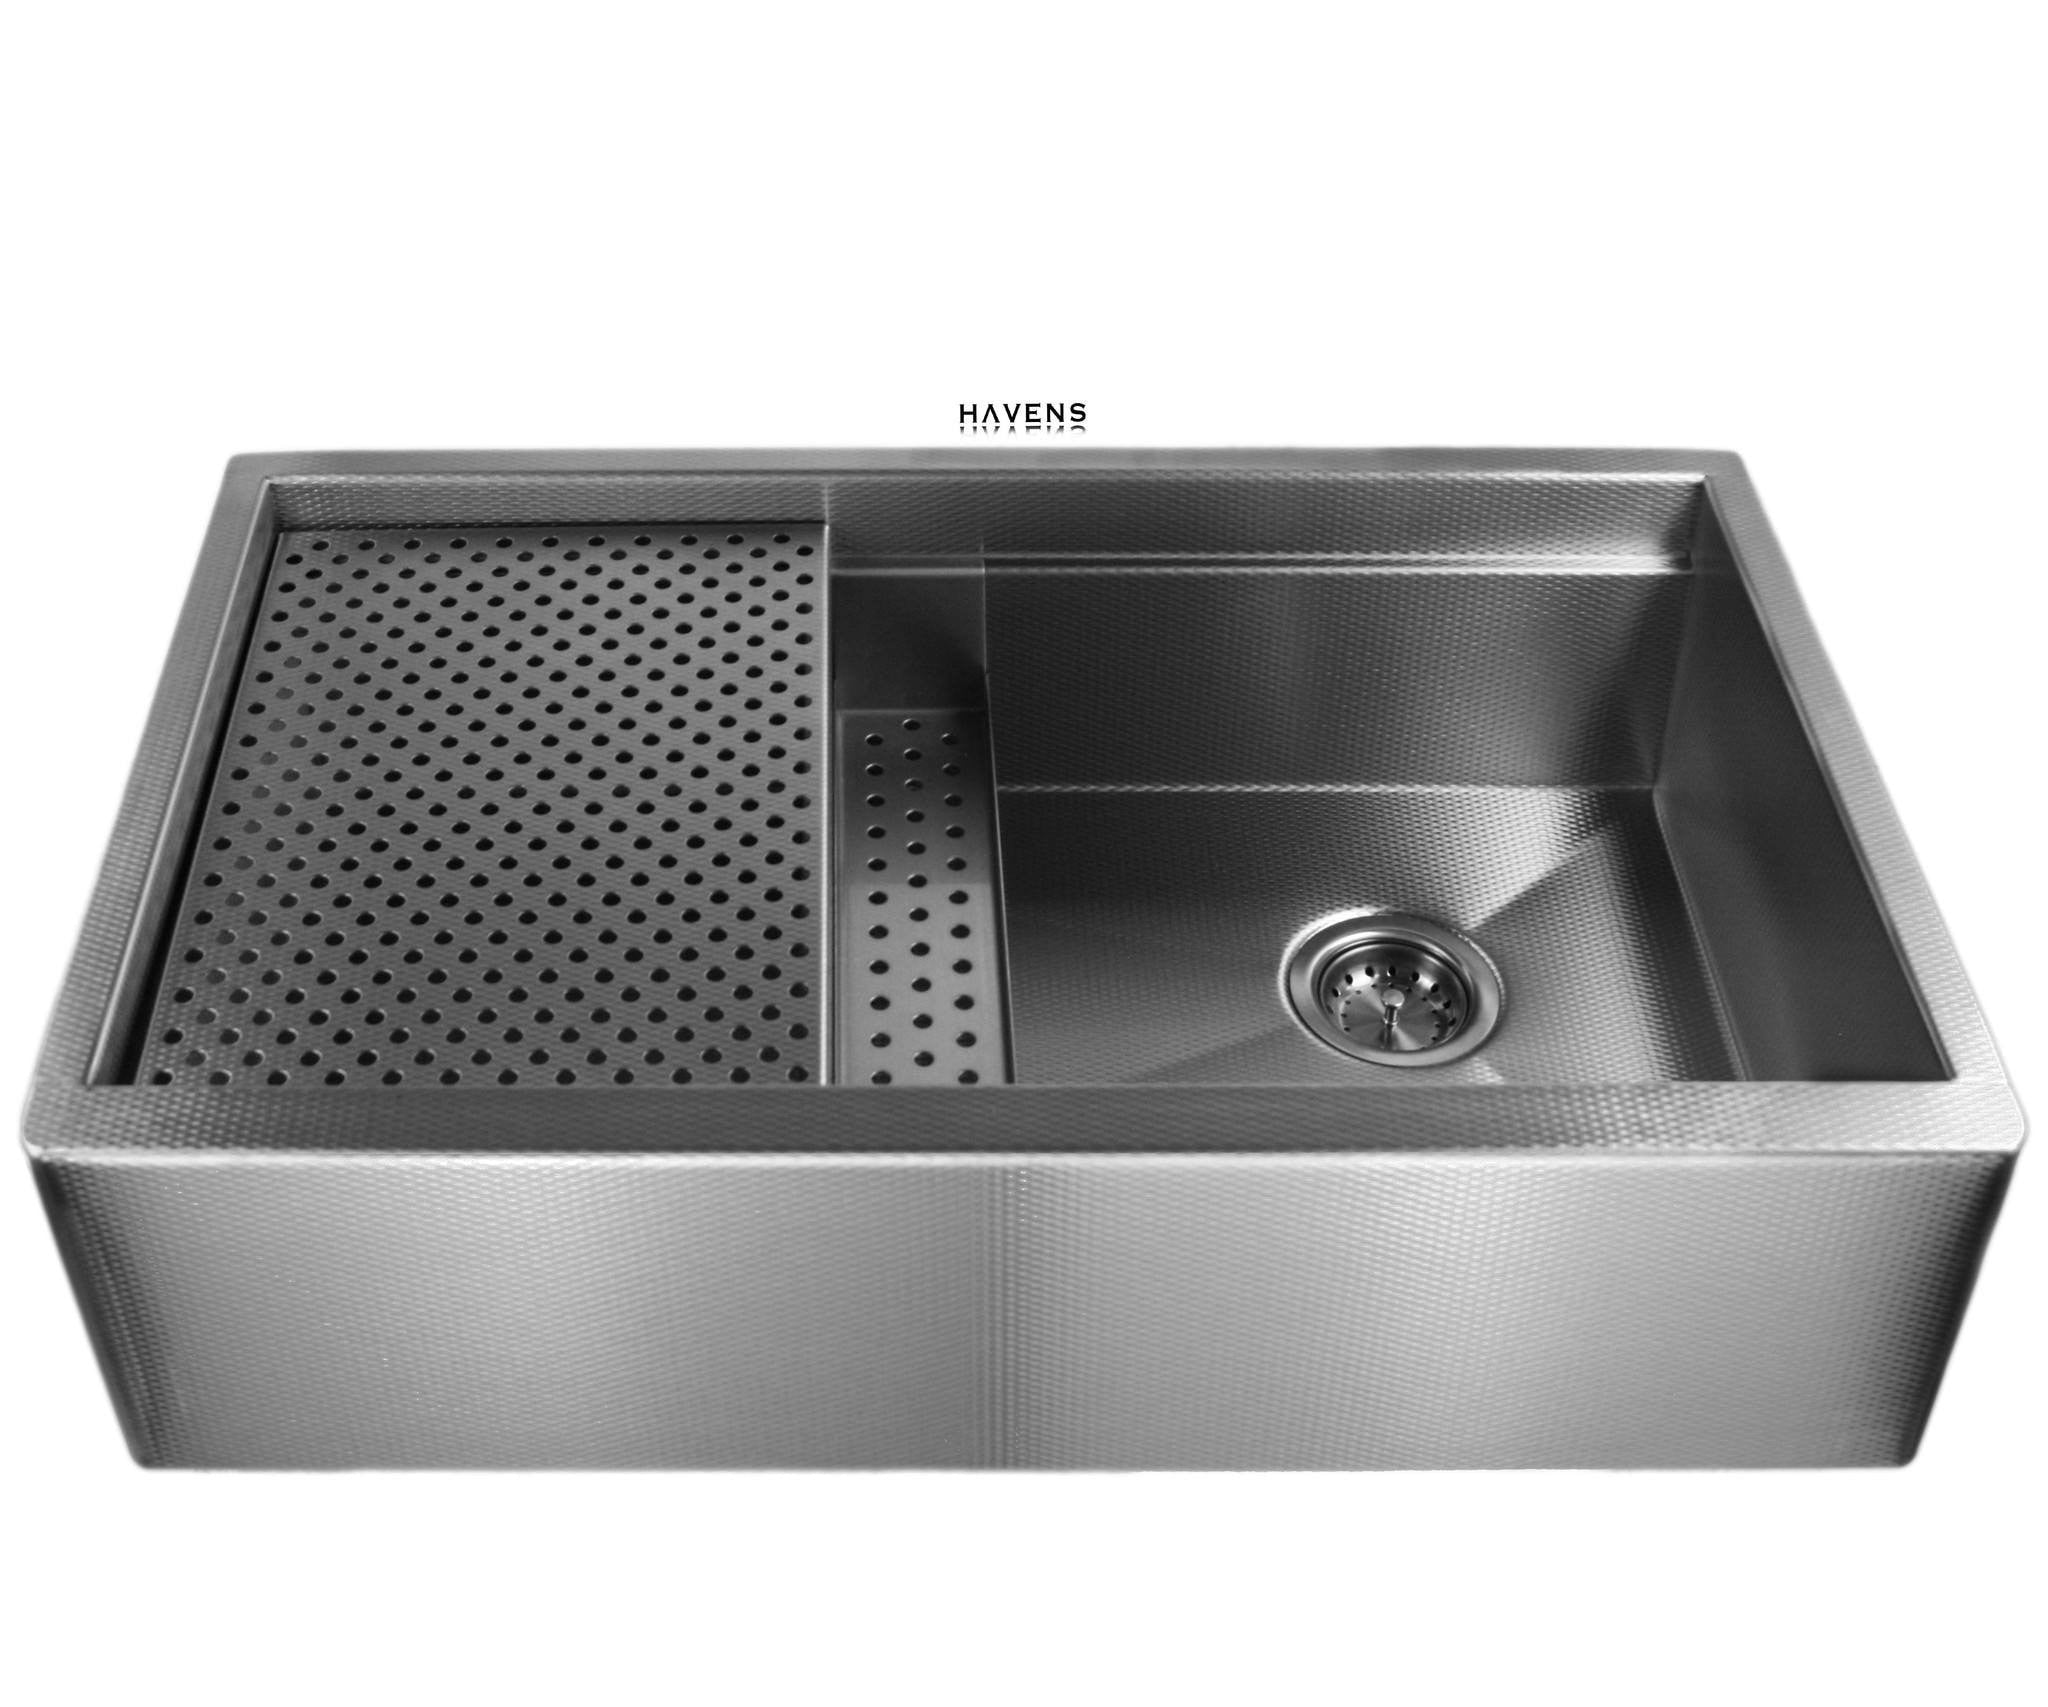 Legacy Stainless Steel Undermount Sink | Prestige - Havens Metal